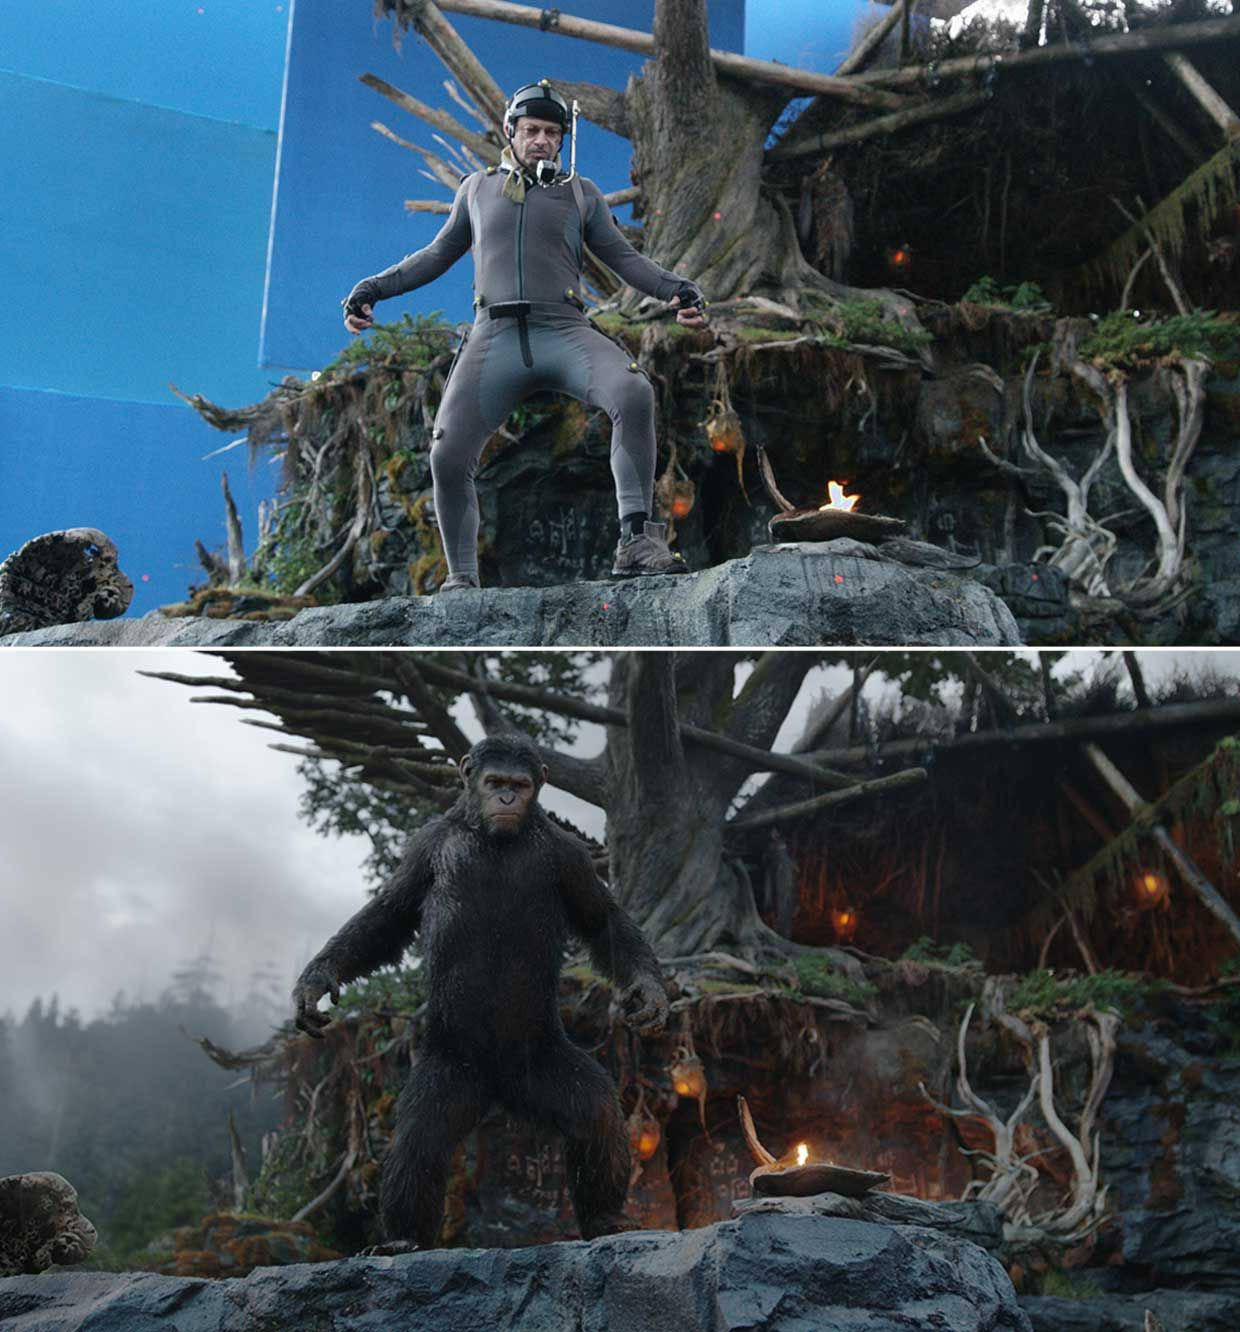 Weta Digital. Andy Serkis. Dawn of the Planet of the Apes. Epic.